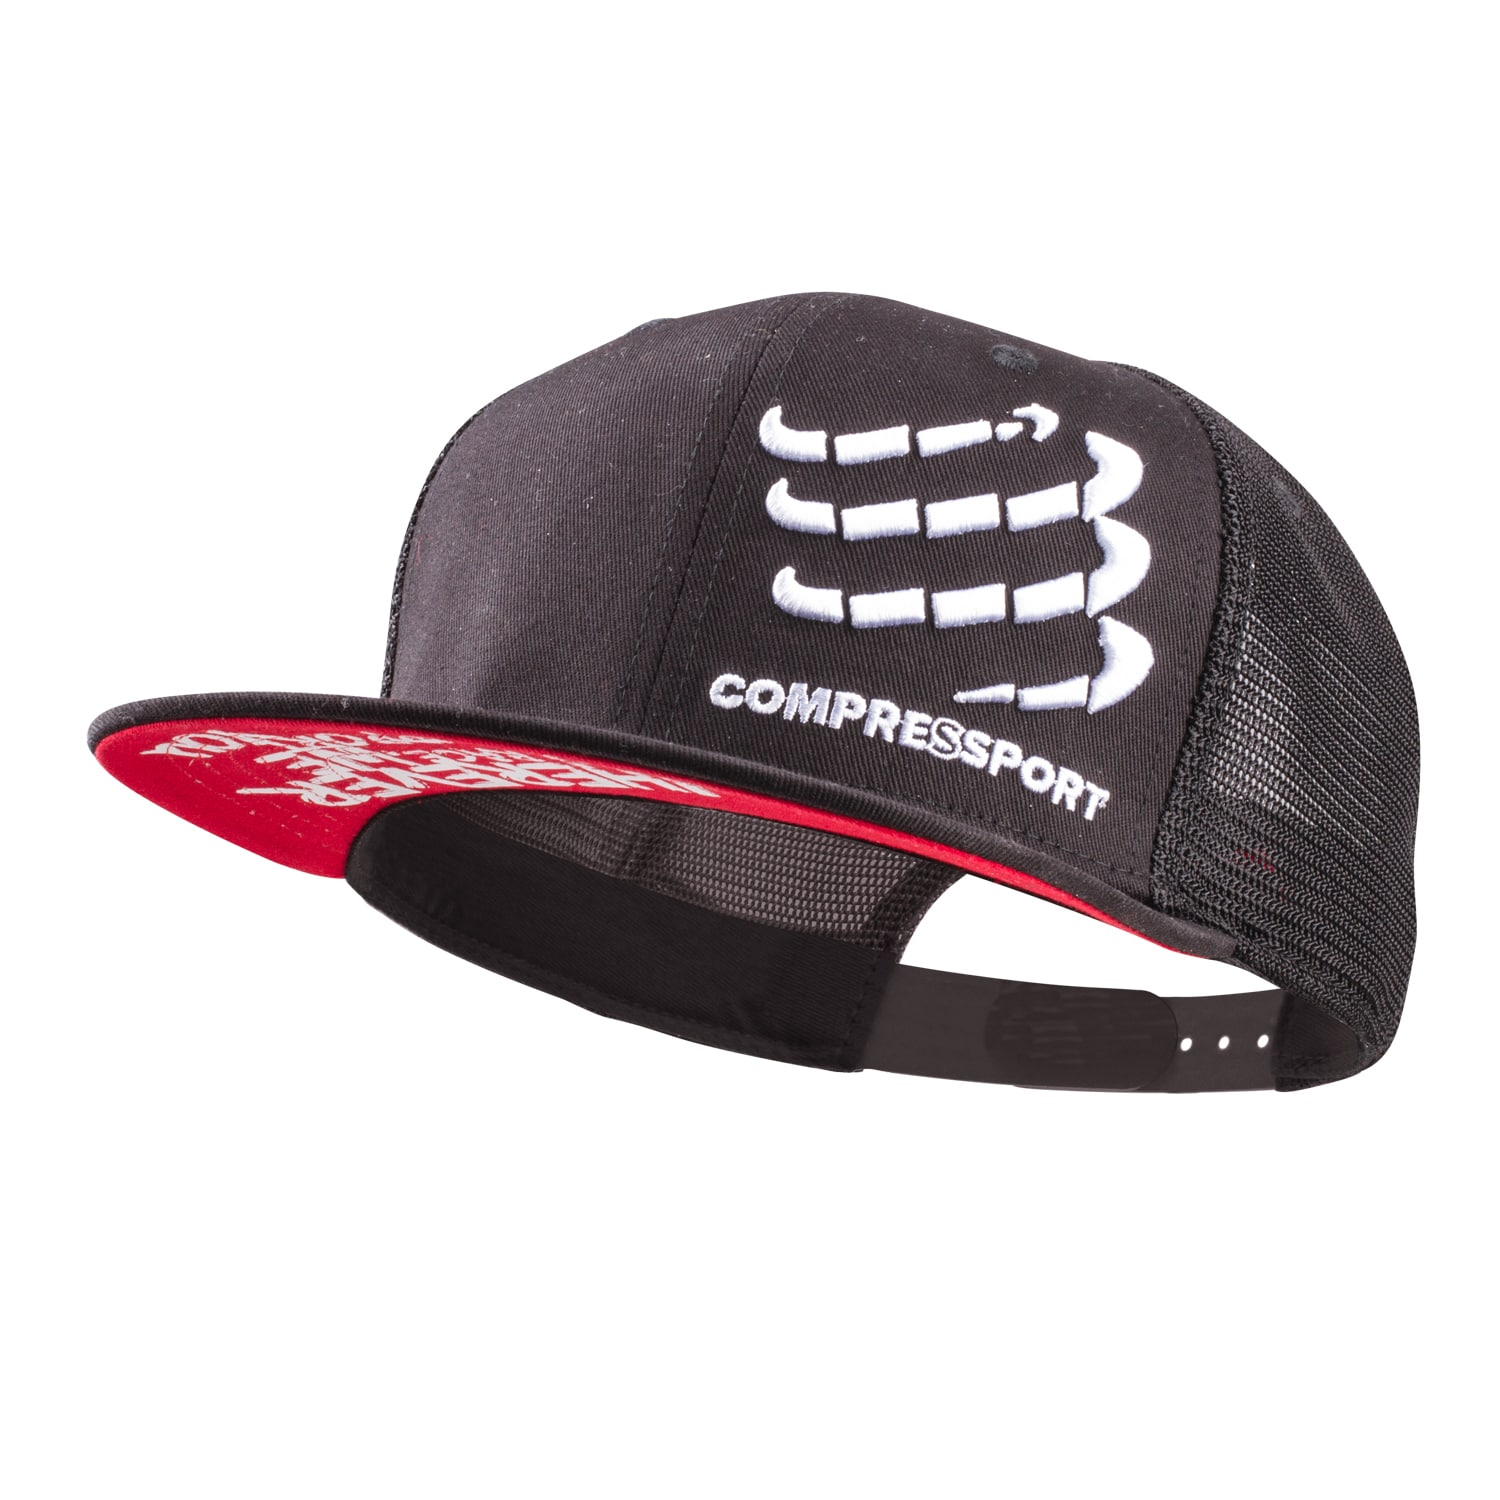 Trucker Cap Mesh unisex - Compressport - 024007059